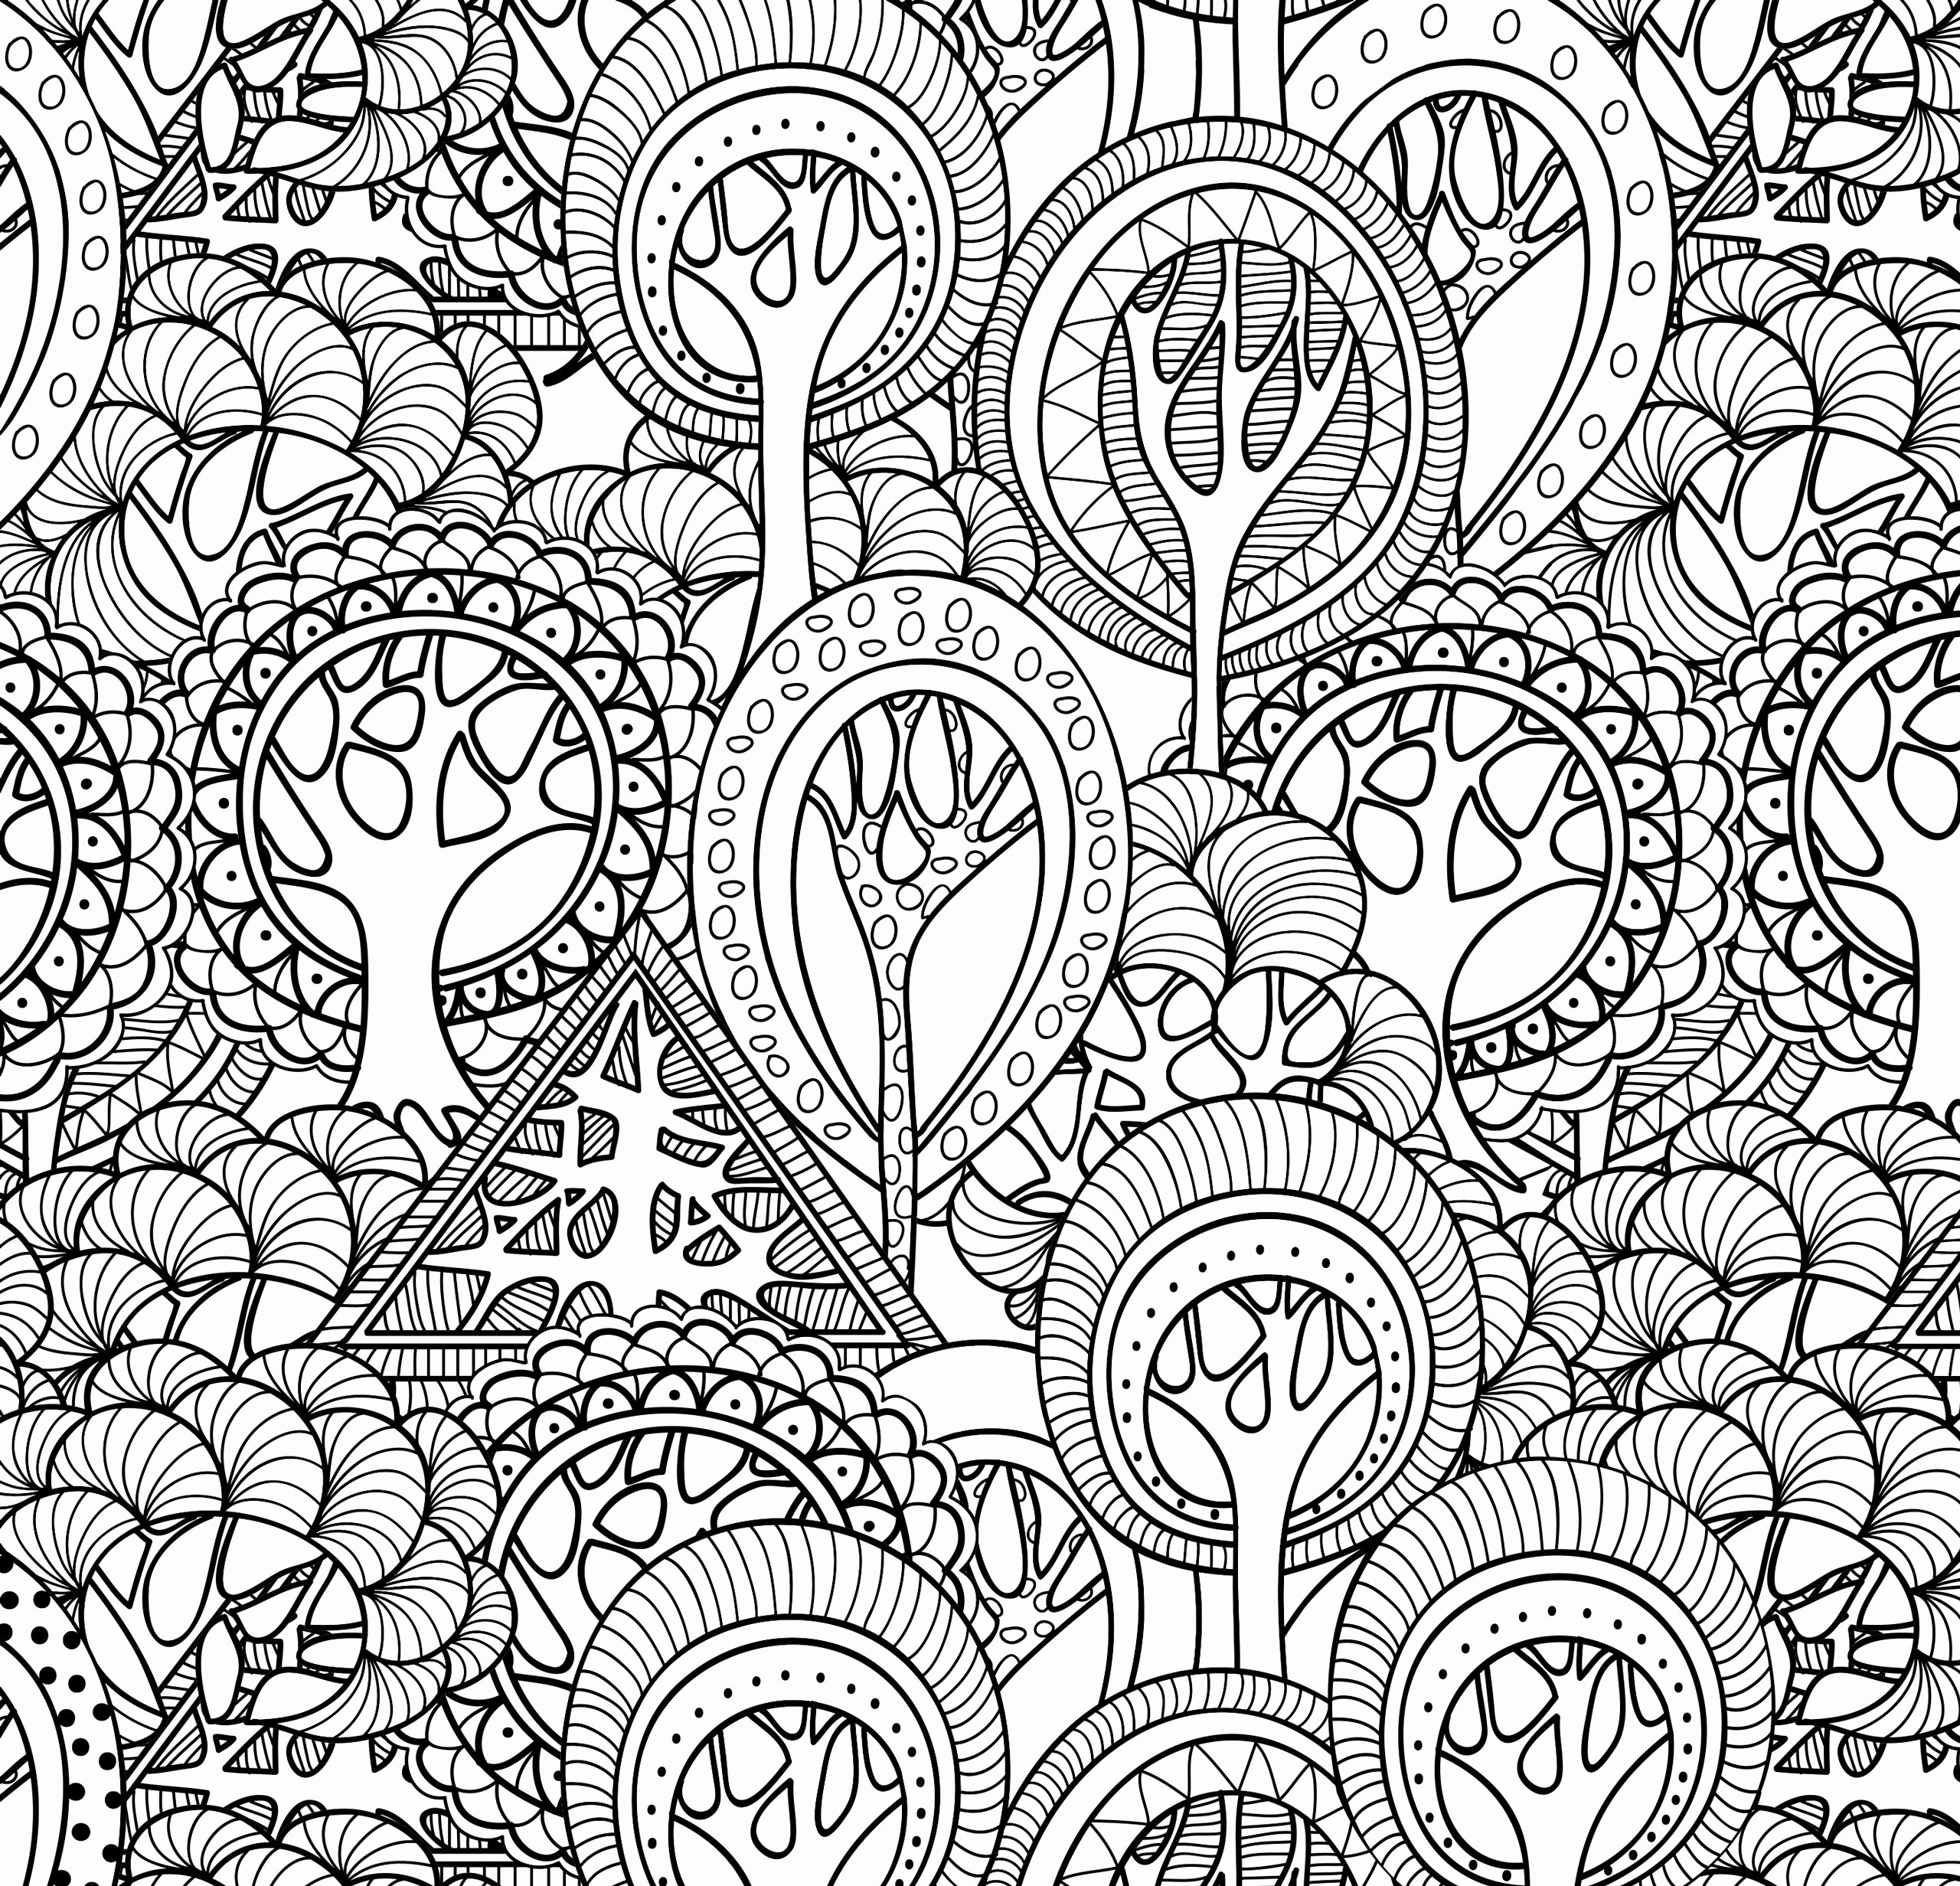 complex colouring pages print download complex coloring pages for kids and adults colouring pages complex